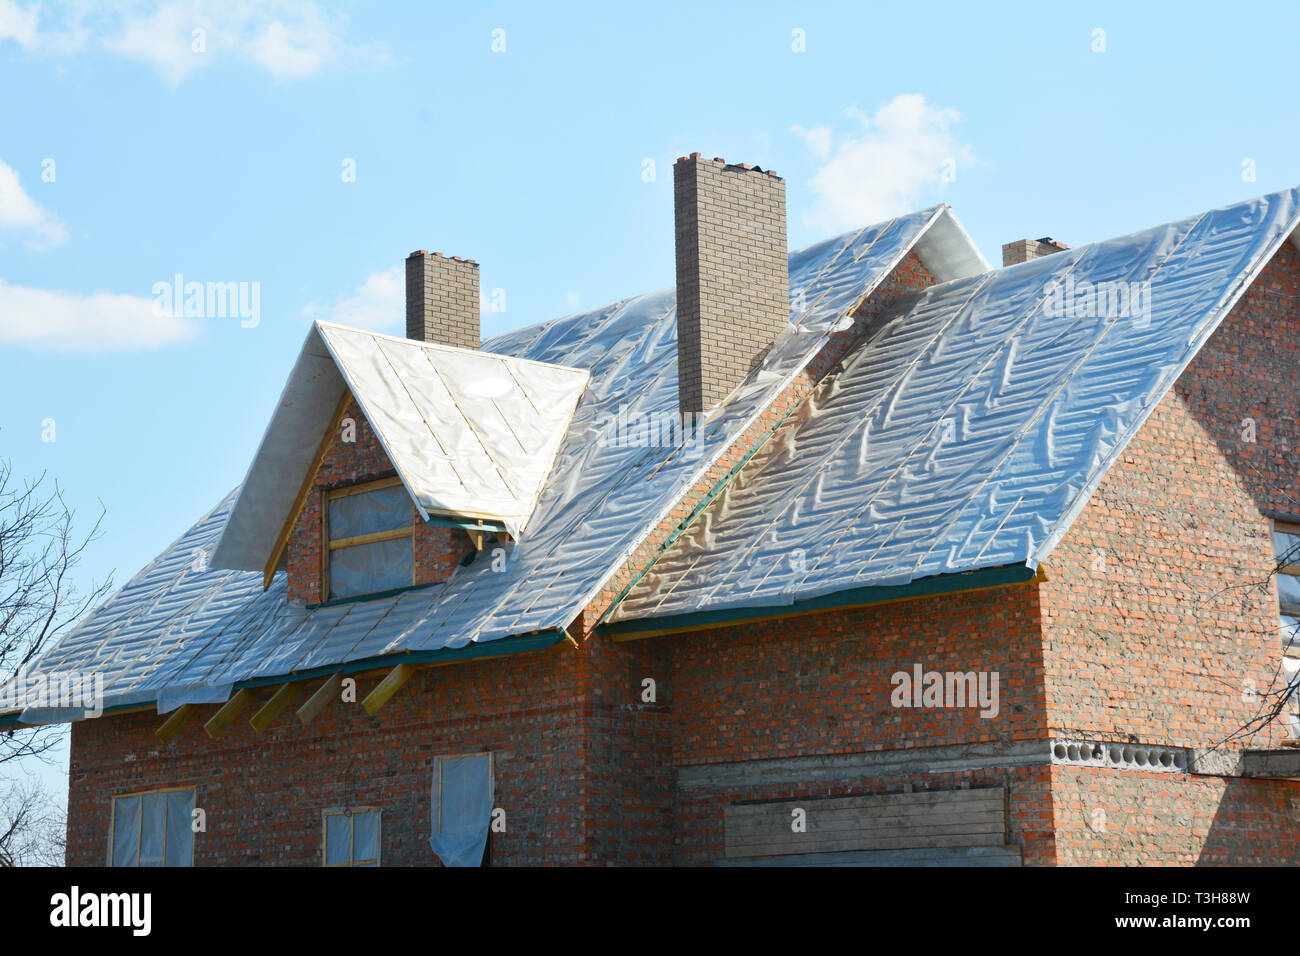 Roofing material Waterproof for thermal-insulation and waterproofing, warm roof construction and roof waterproofing membrane. - Stock Image